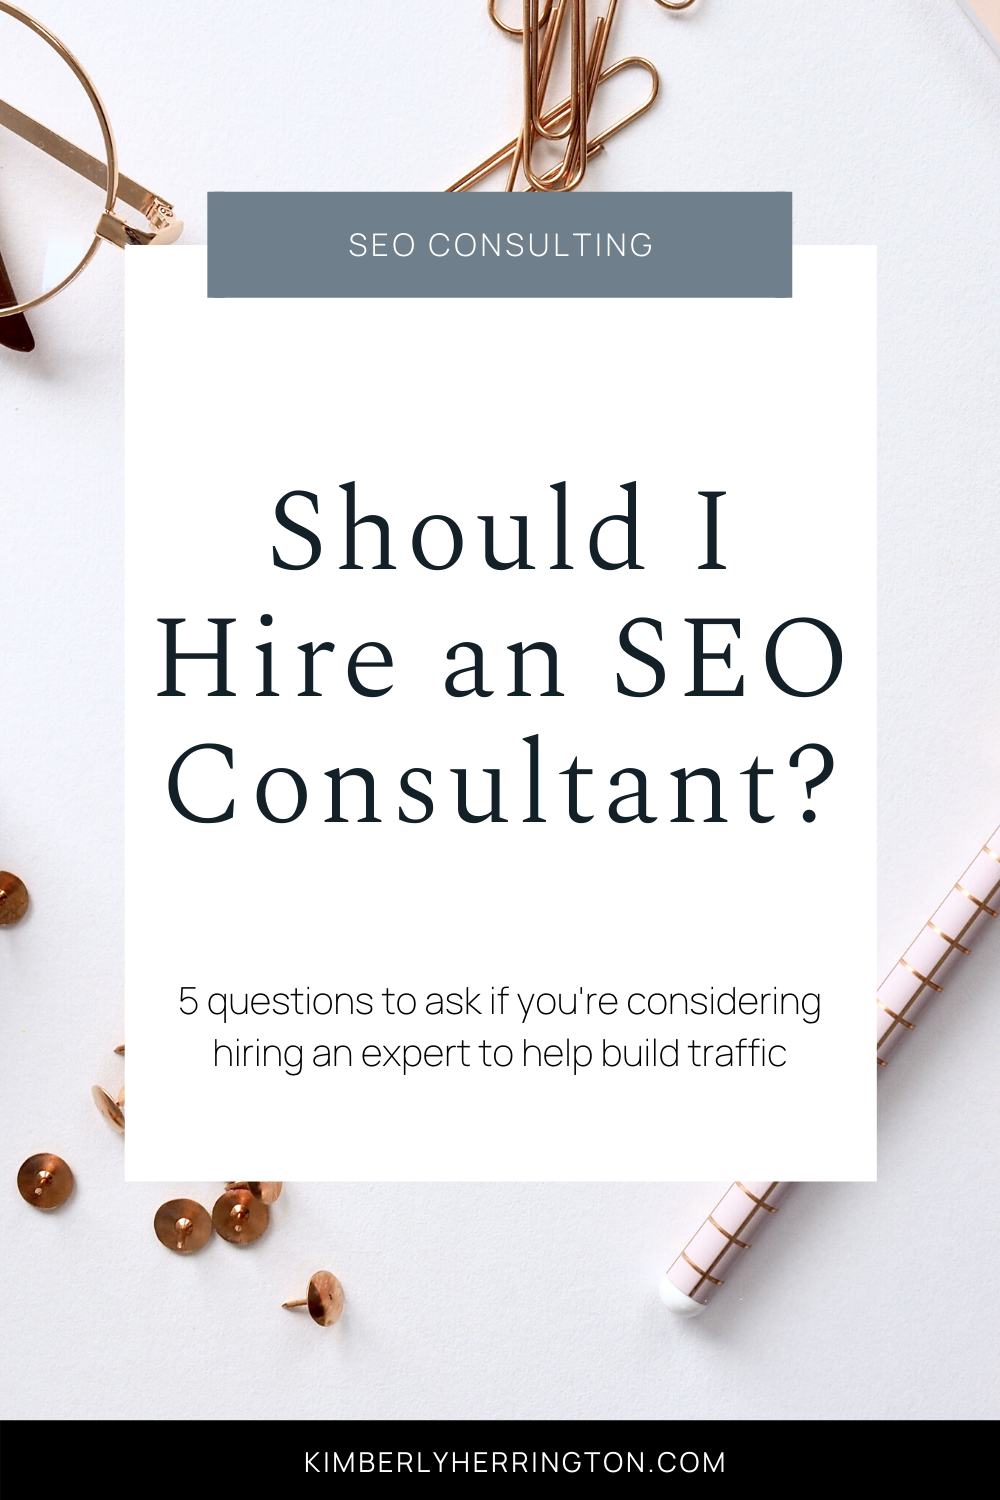 Should I Hire an SEO Consultant?